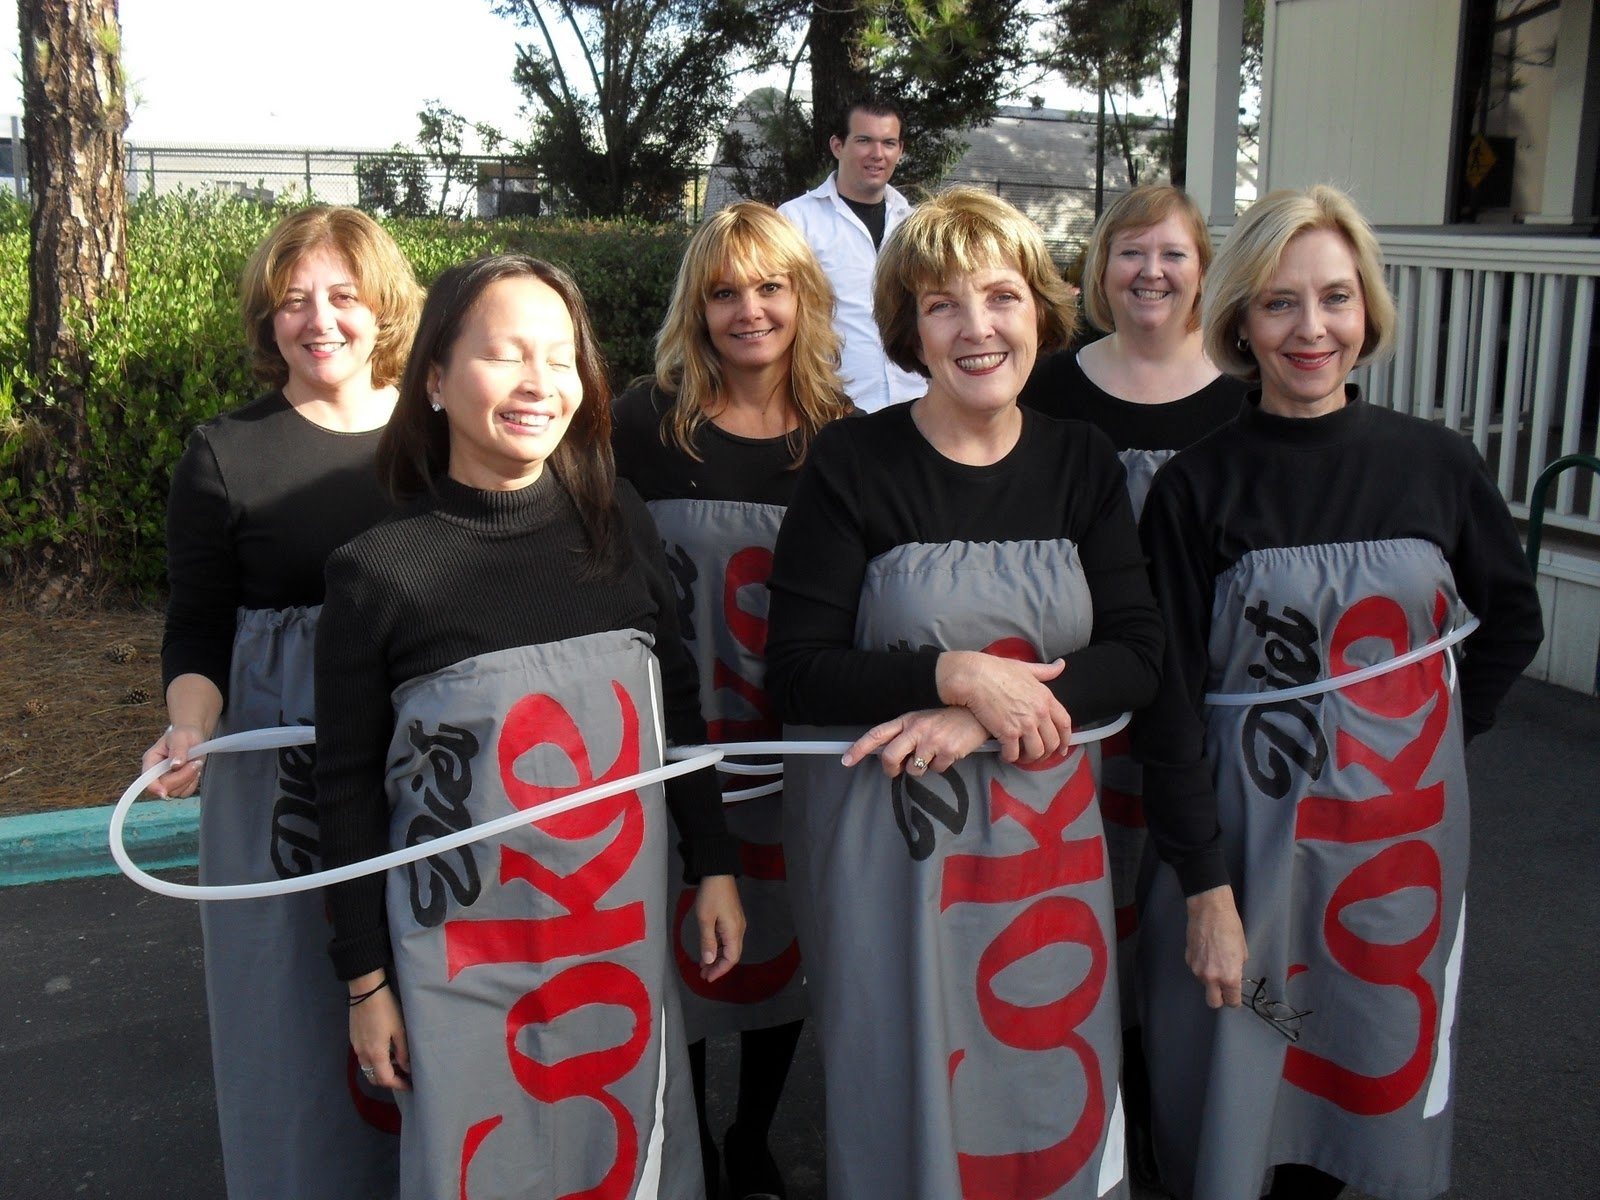 10 Attractive Costume Ideas For Three People stamp til dawn halloween costumes 2